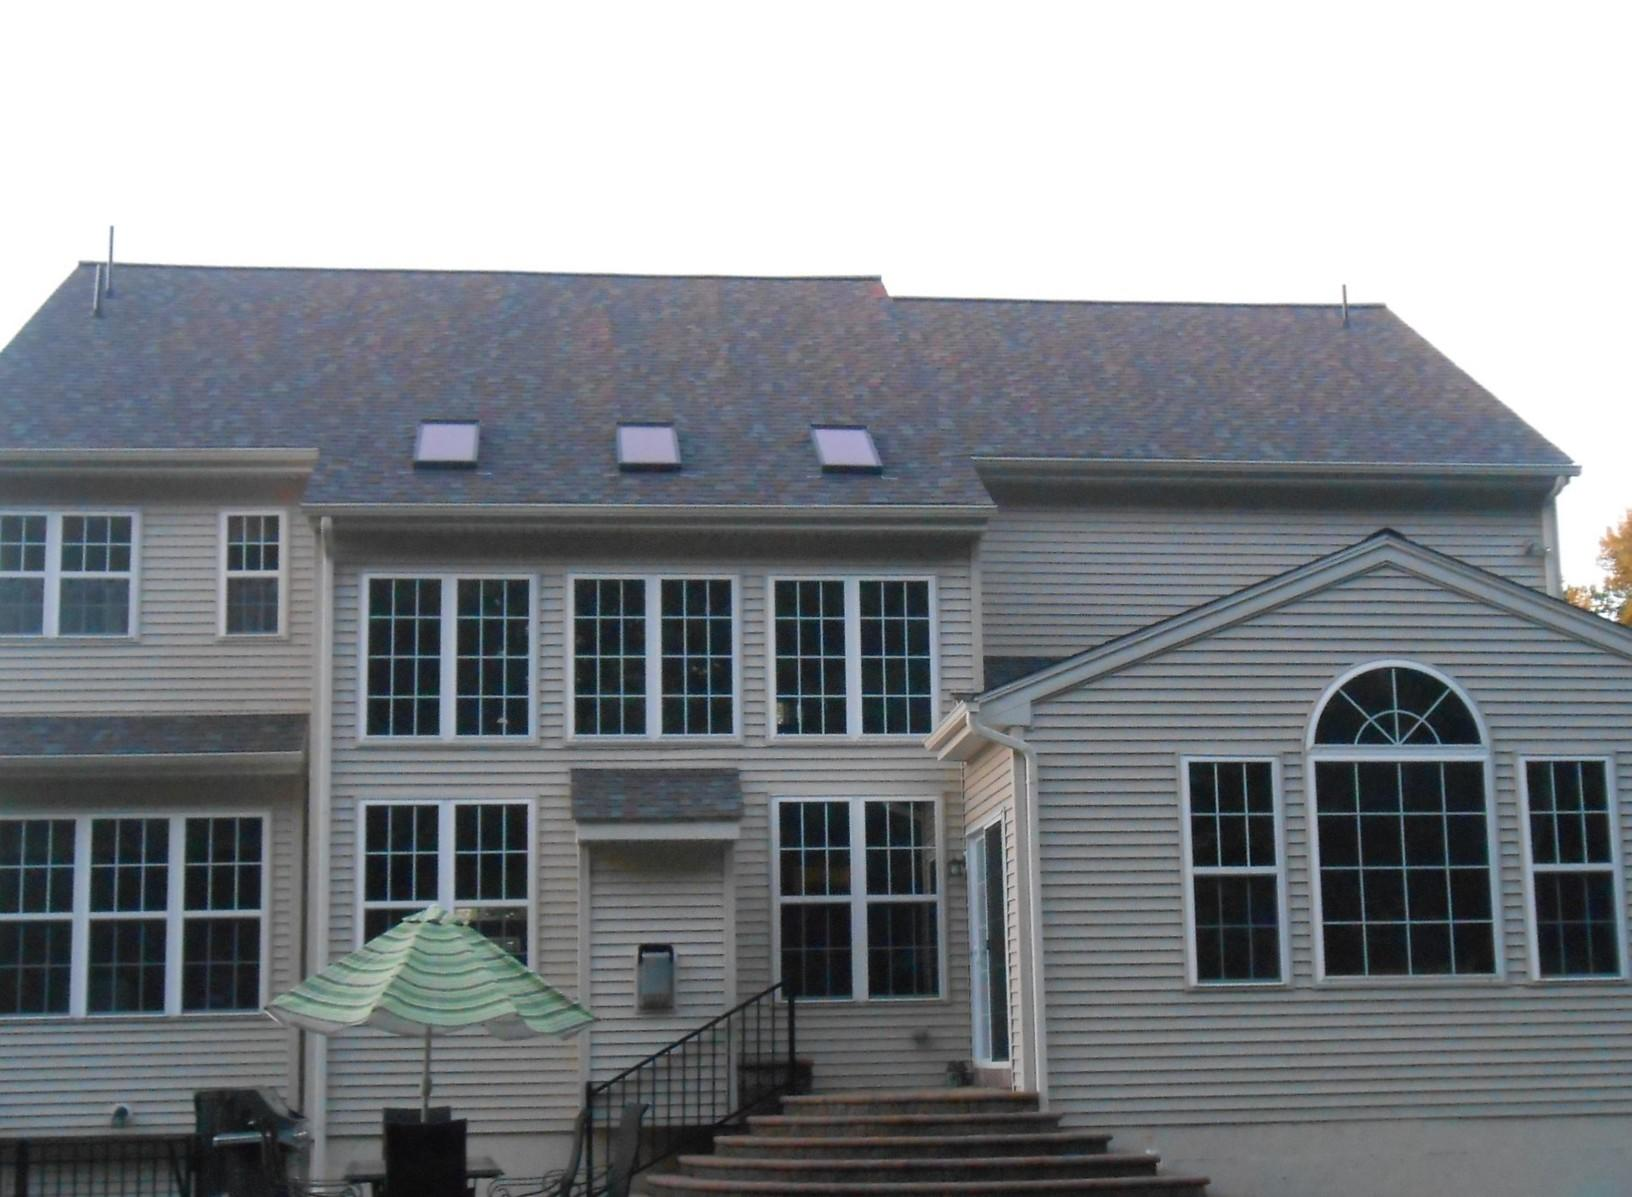 Owens Shingles on Roof with Skylights